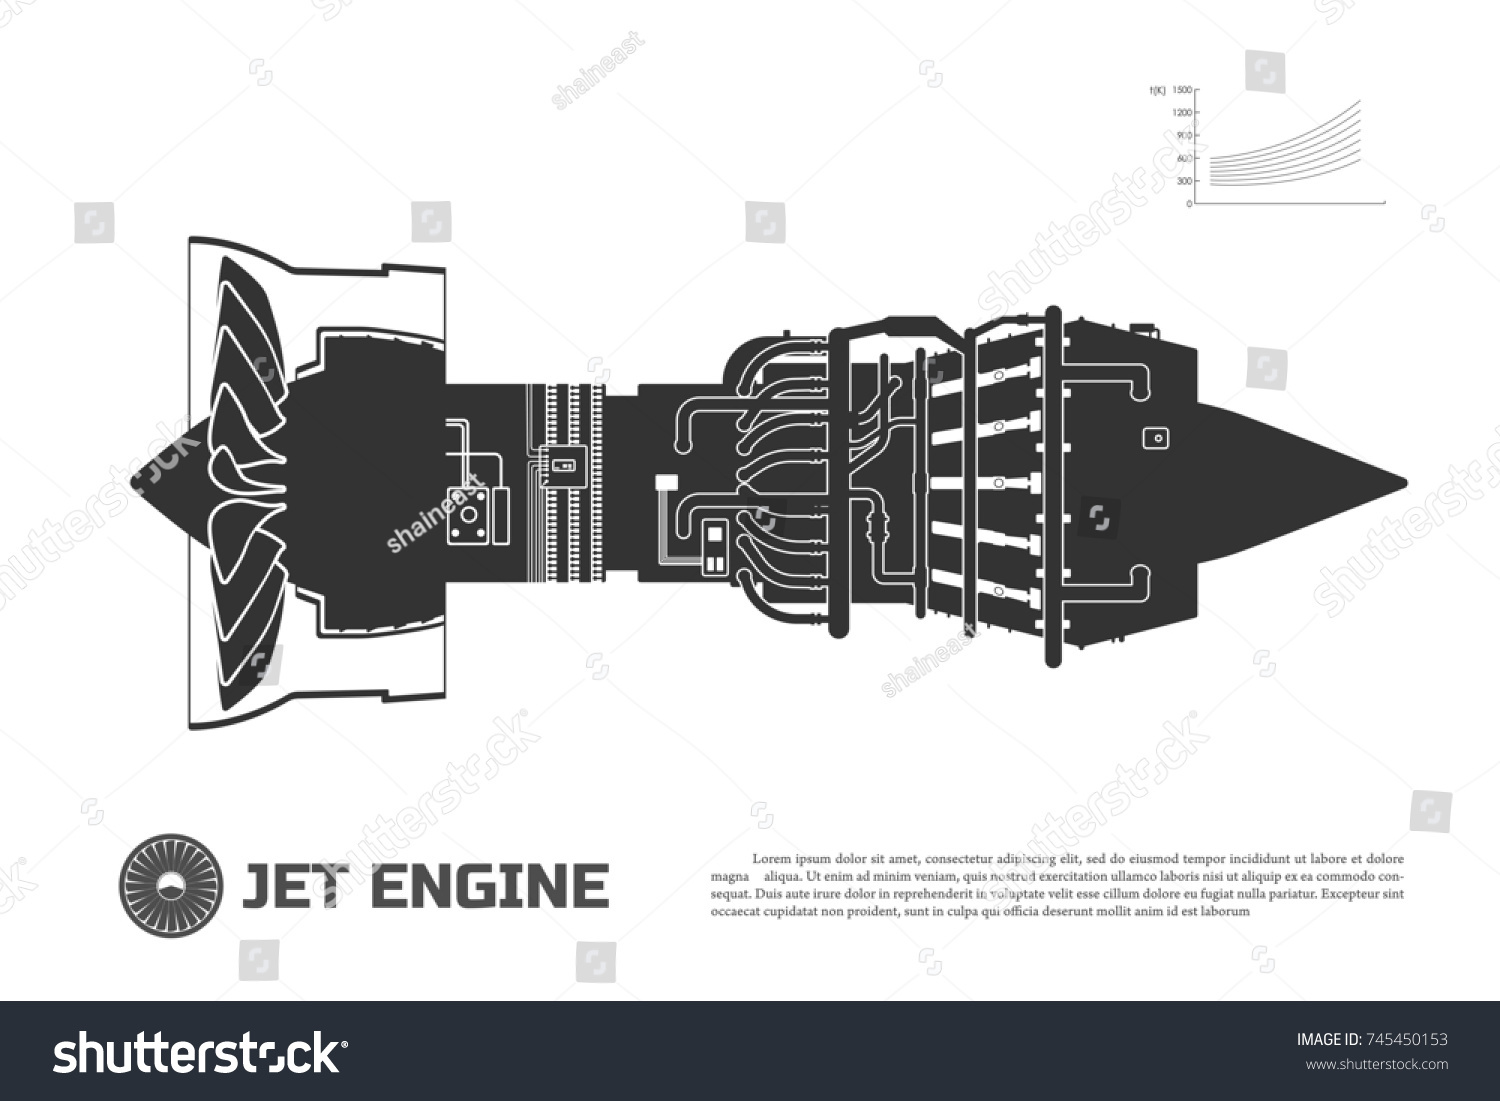 100 general electric j79 wikipedia the free encyclopedia turbo jet engine diagram dodge pickup blower motor wiring diagram pooptronica Gallery